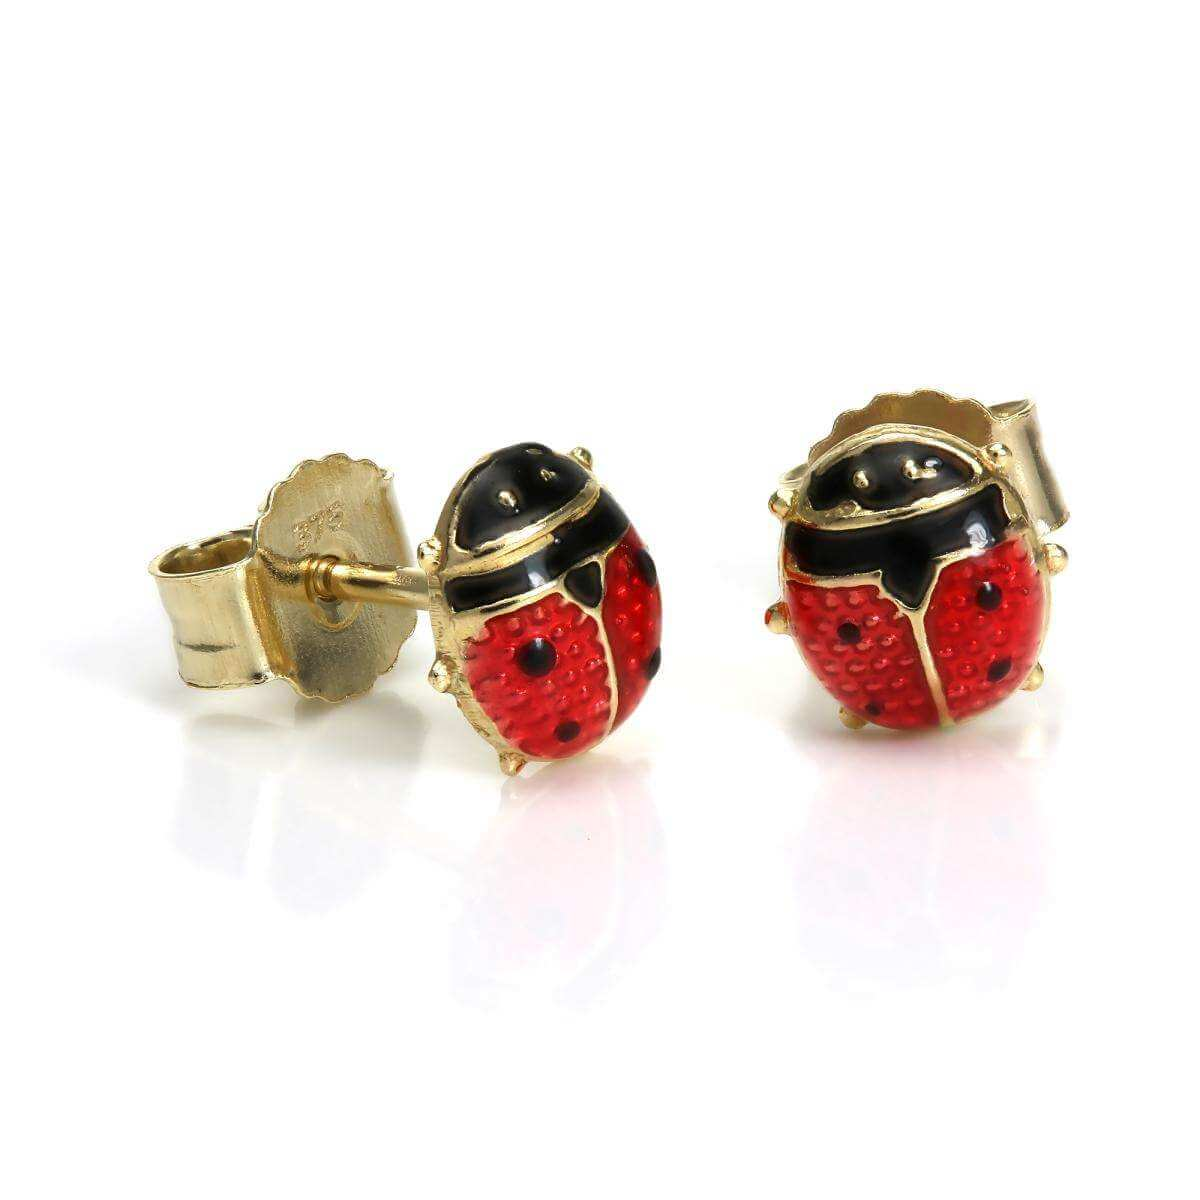 Tiny 9ct Gold & Enamel Small Ladybird Stud Earrings